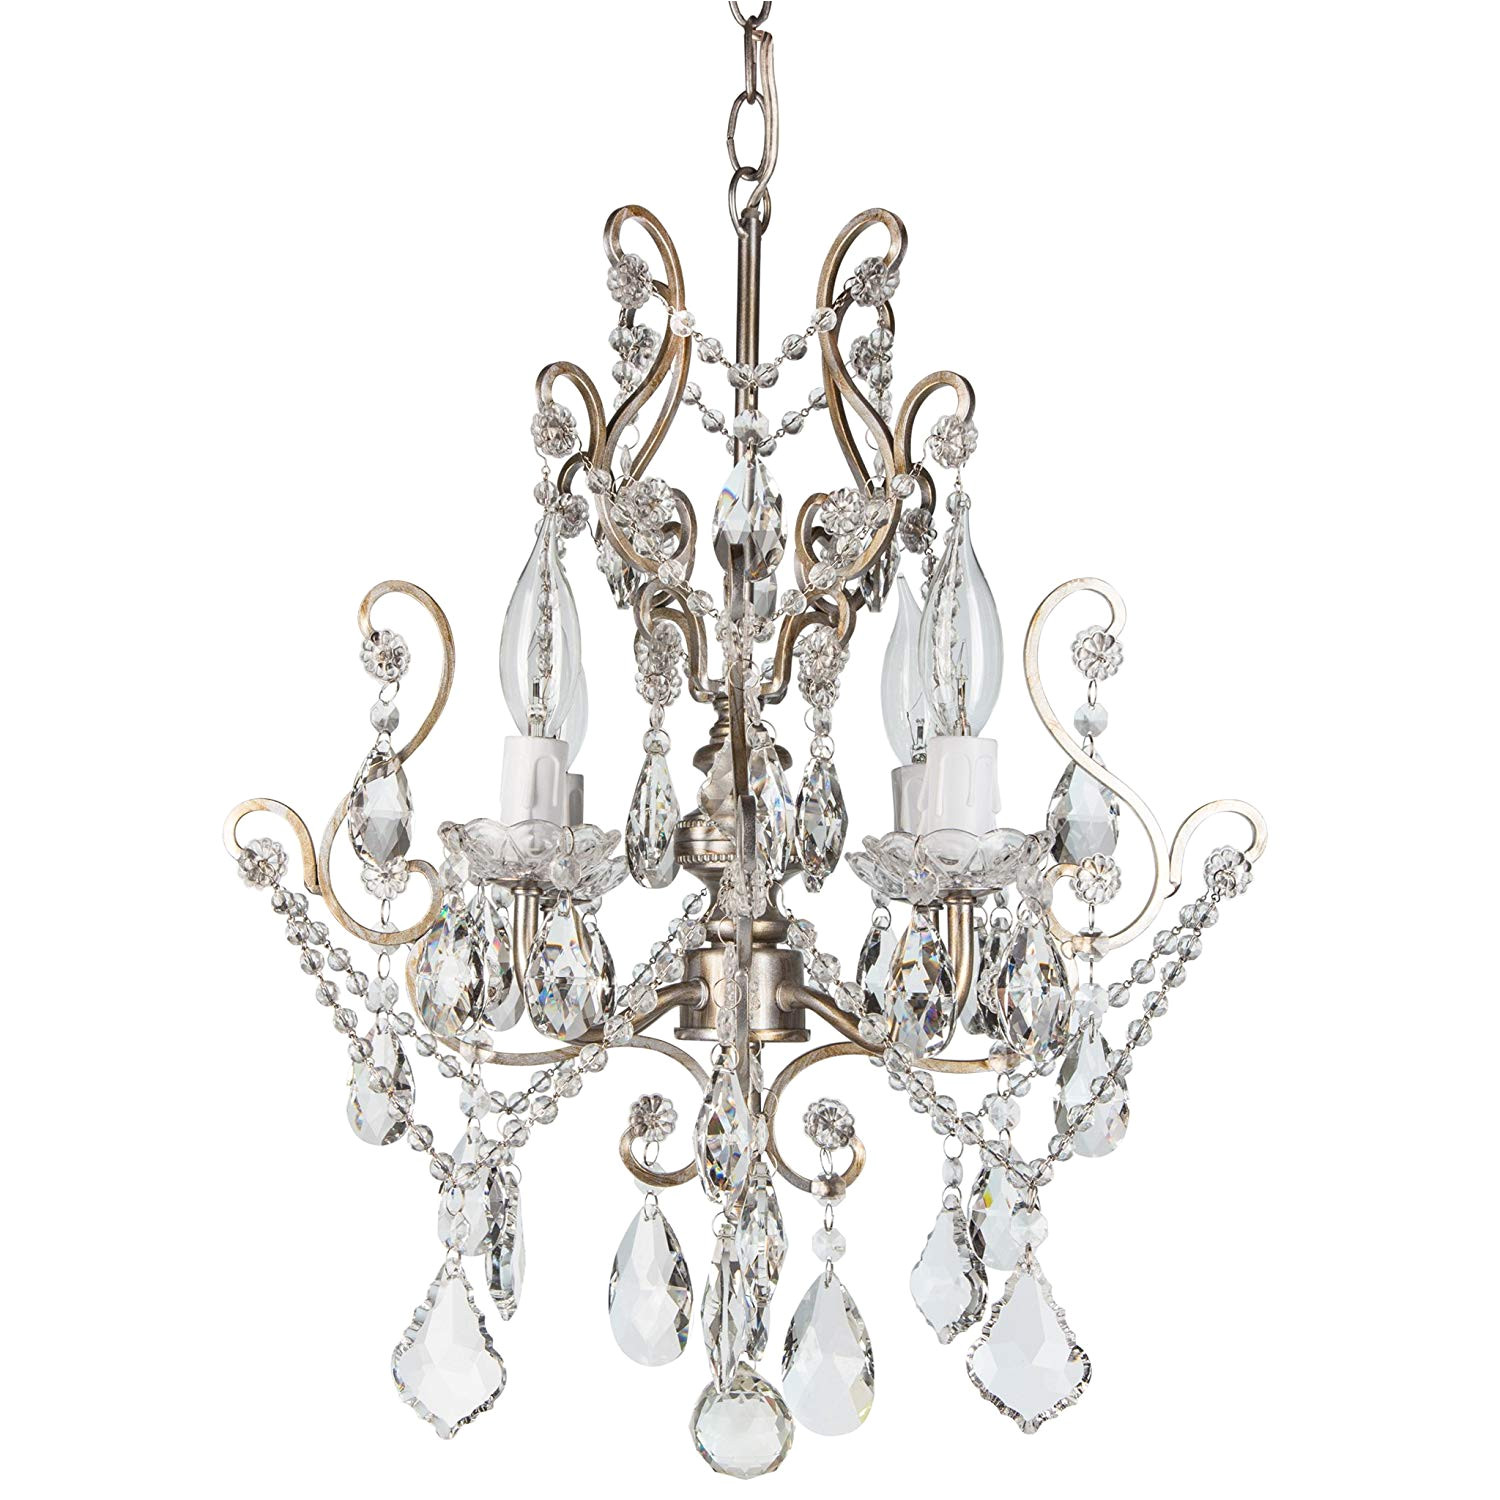 theresa vintage silver crystal chandelier mini plug in swag glass pendant 4 light wrought iron ceiling lighting fixture lamp amazon com